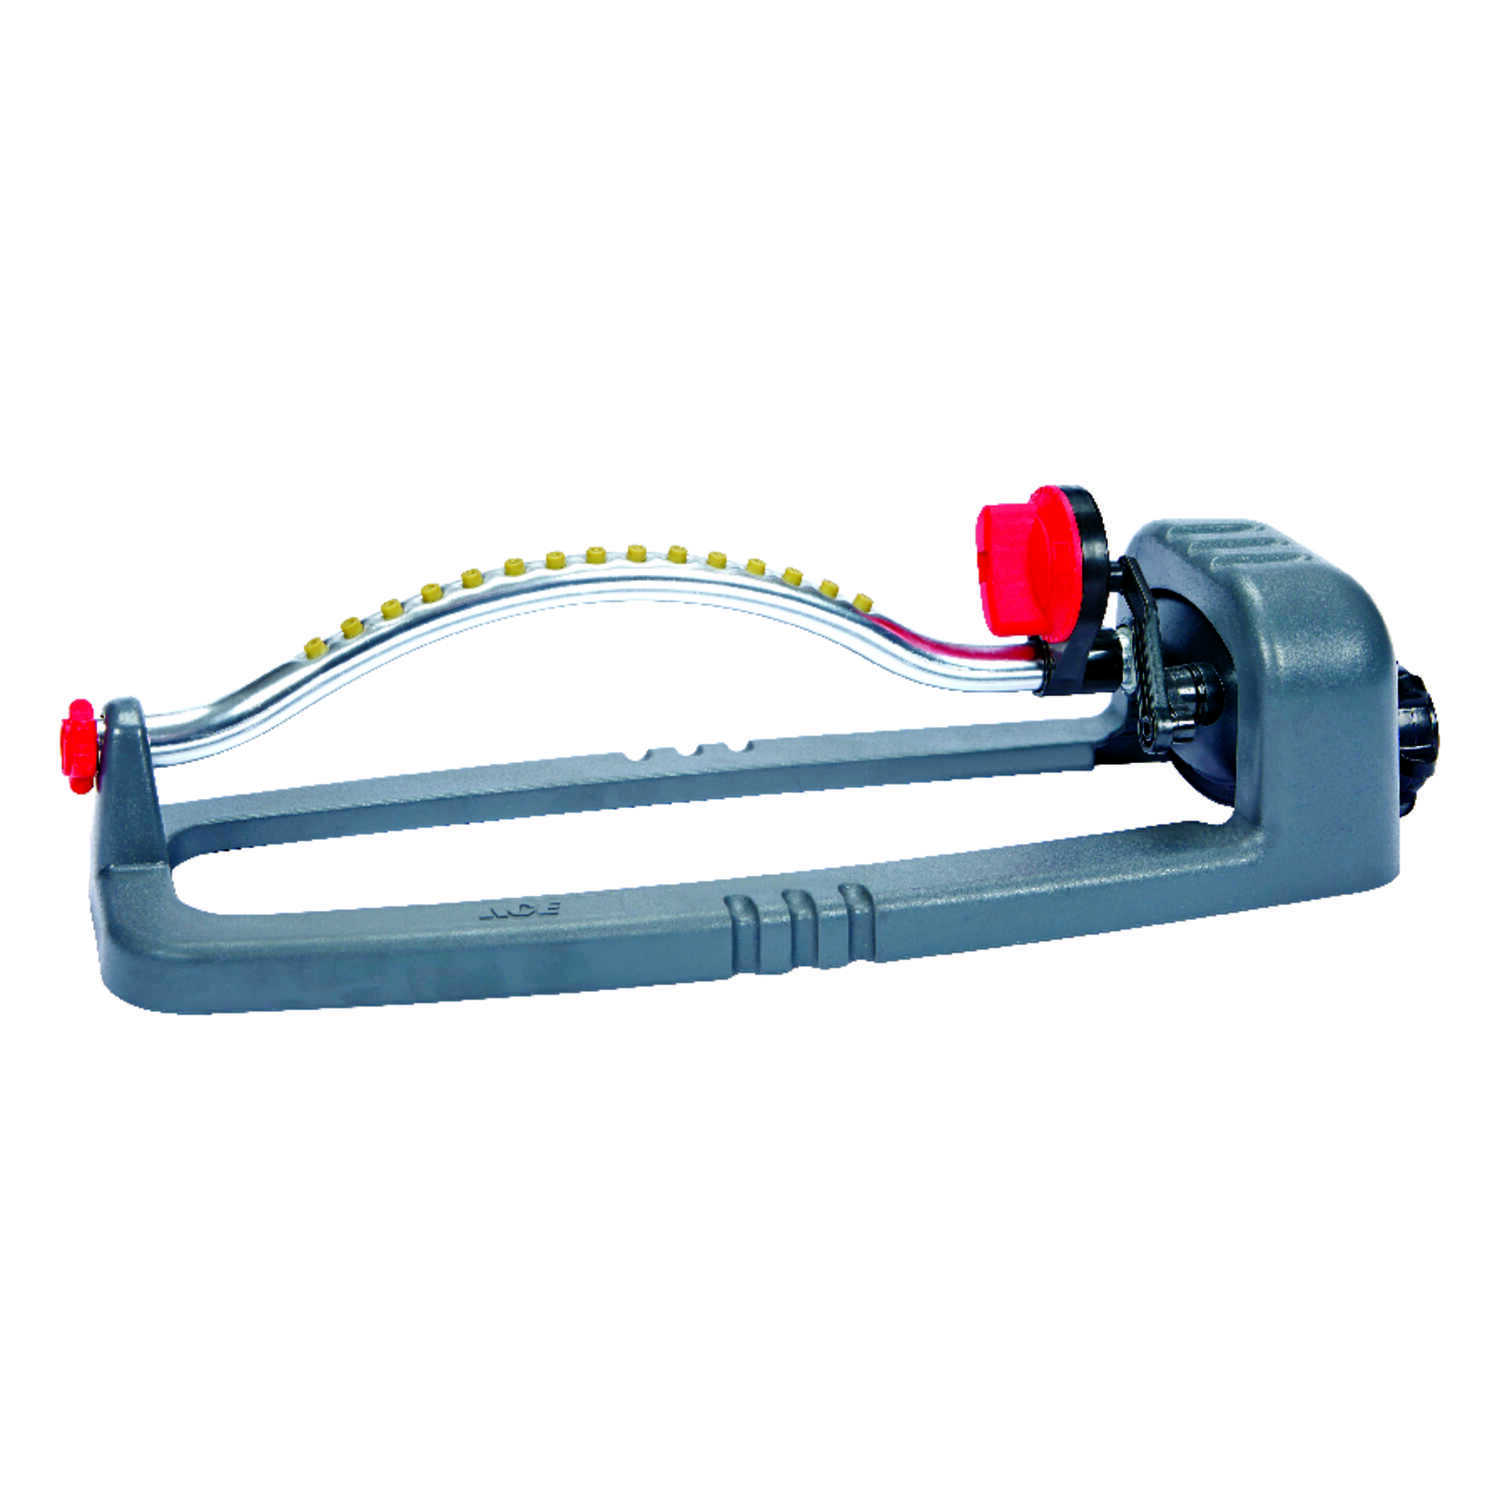 Ace  Metal  Sled Base  Oscillating Sprinkler  3000 sq. ft.